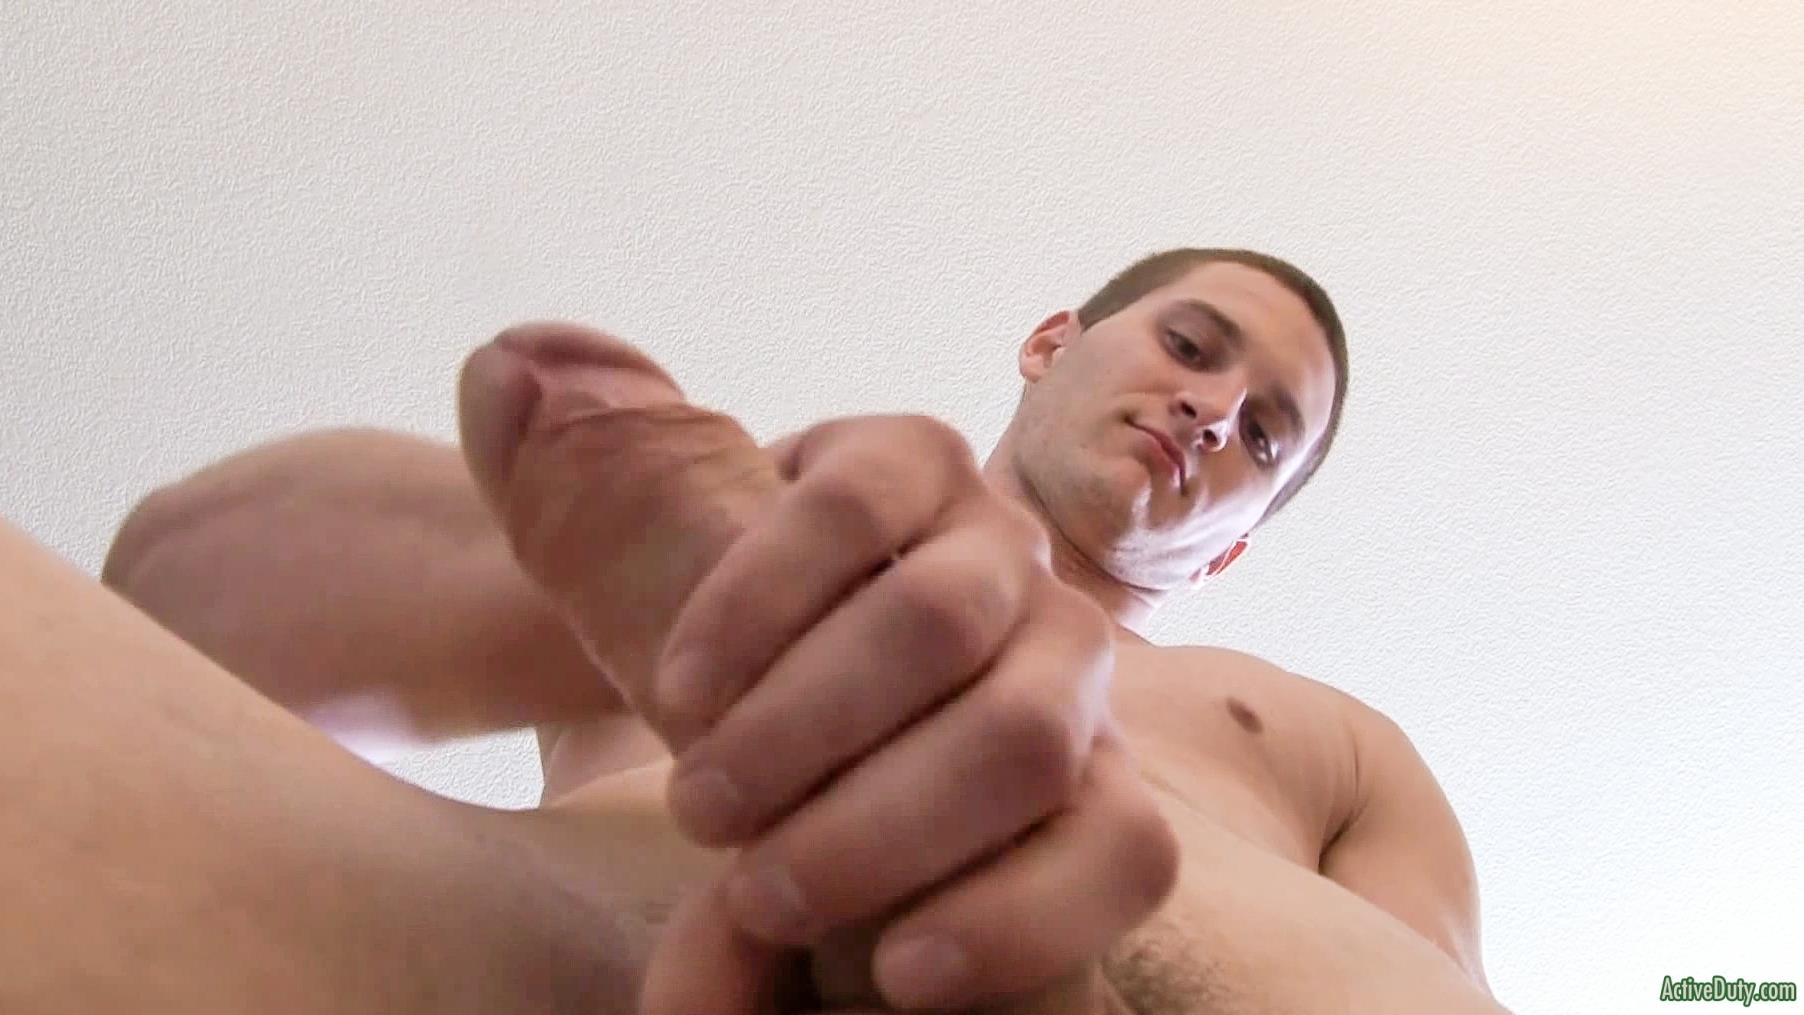 Active Duty Allen Lucas Army Private Jerking Off Big Uncut Cock Amateur Gay Porn 09 US Army Private Jerking His Big Uncut Cock